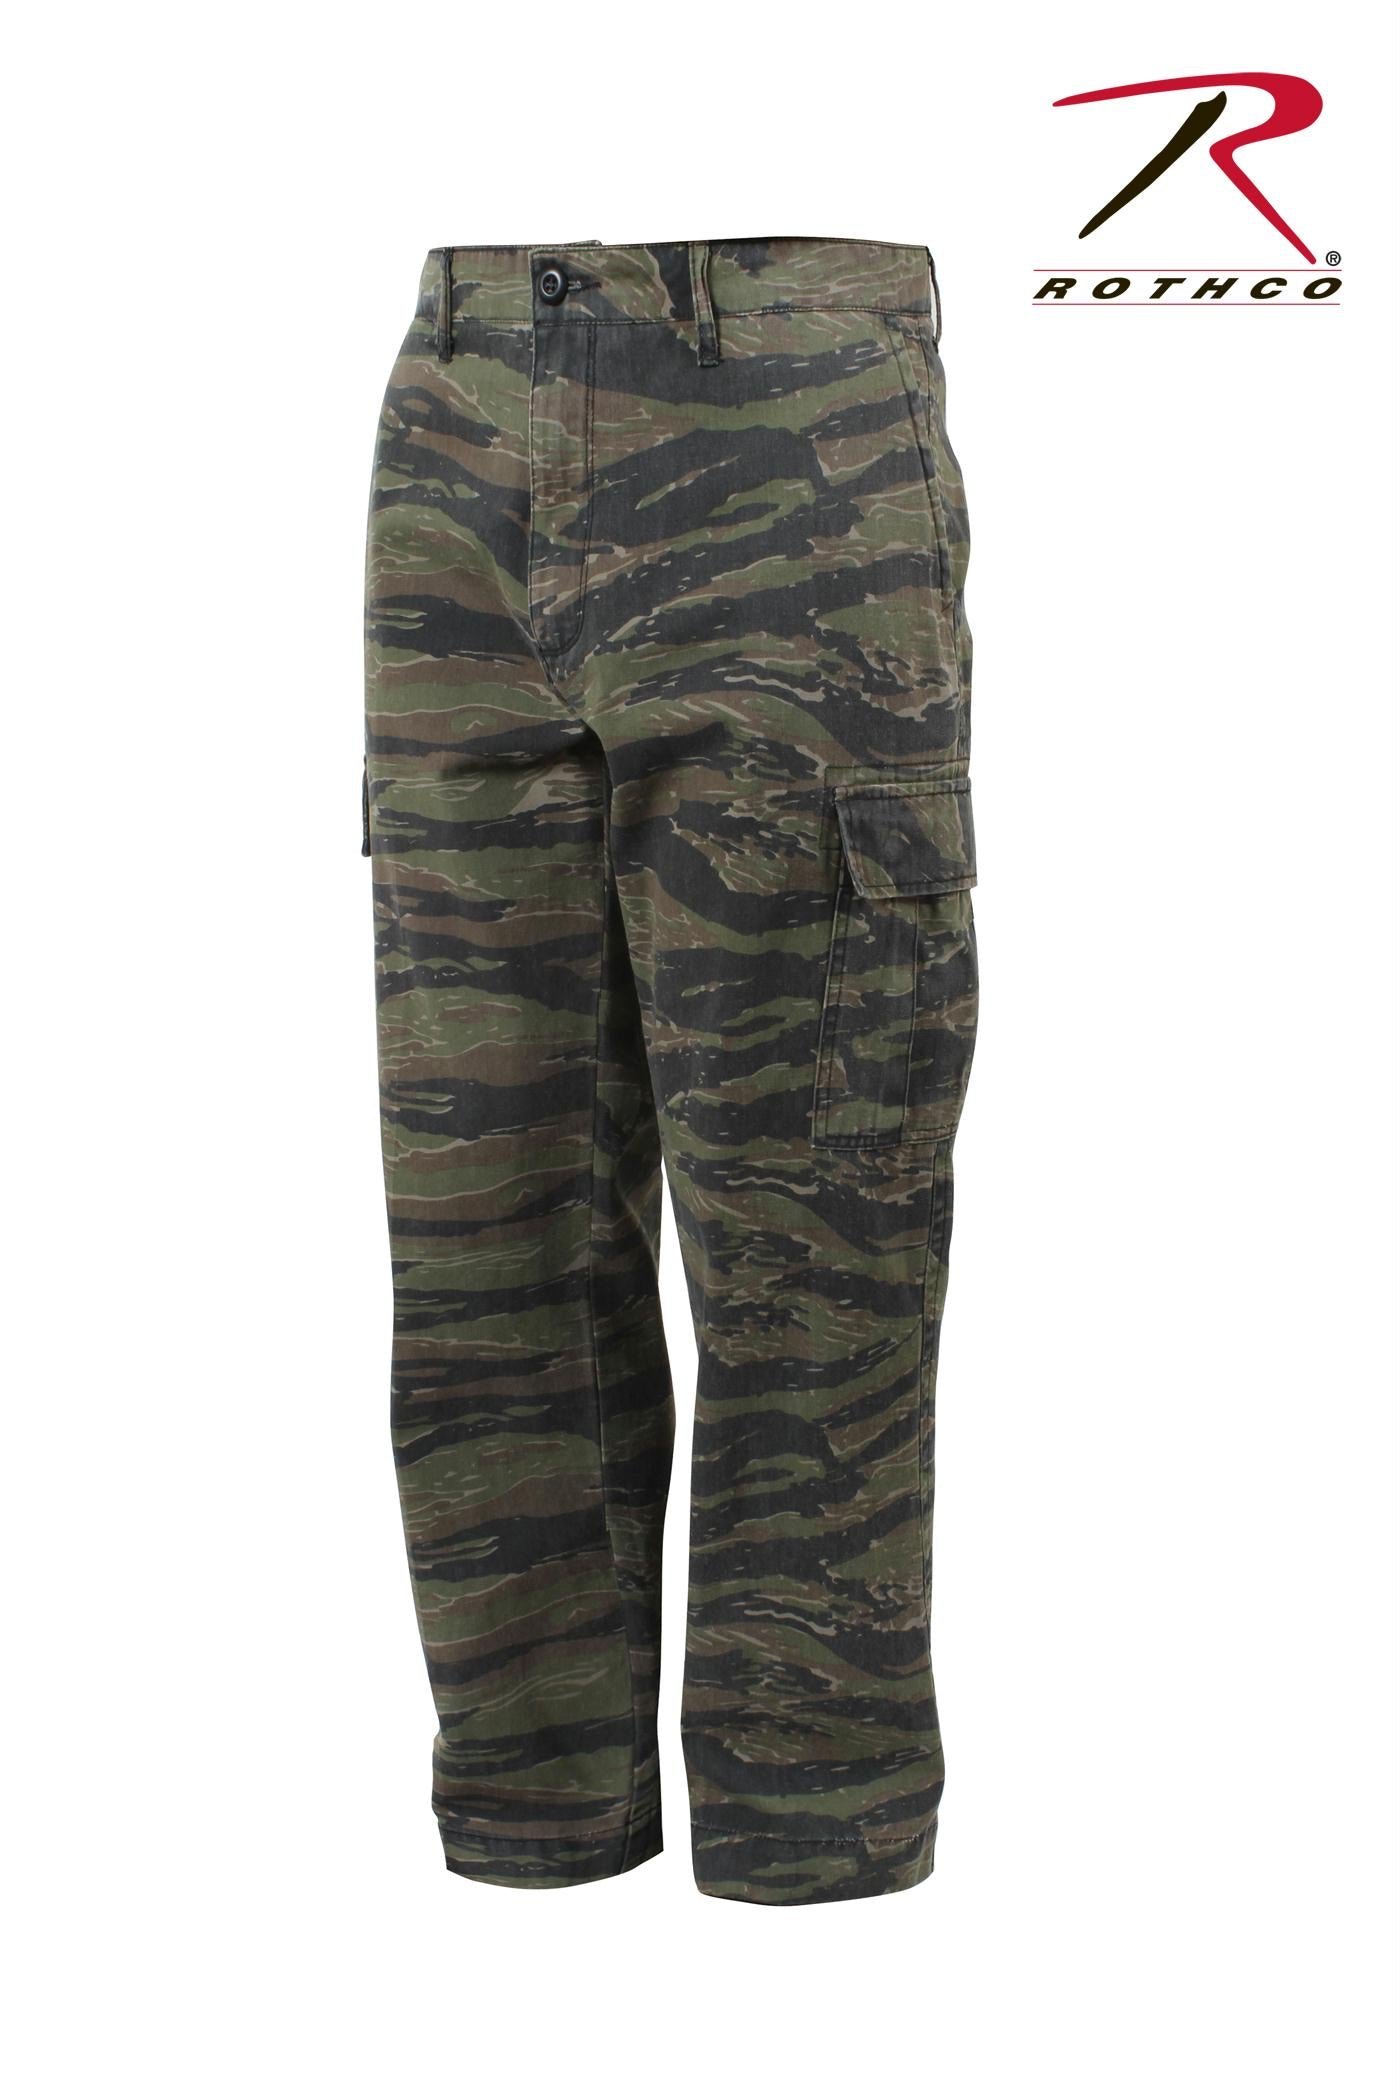 Rothco Vintage 6-Pocket Flat Front Fatigue Pants - Tiger Stripe Camo / 36